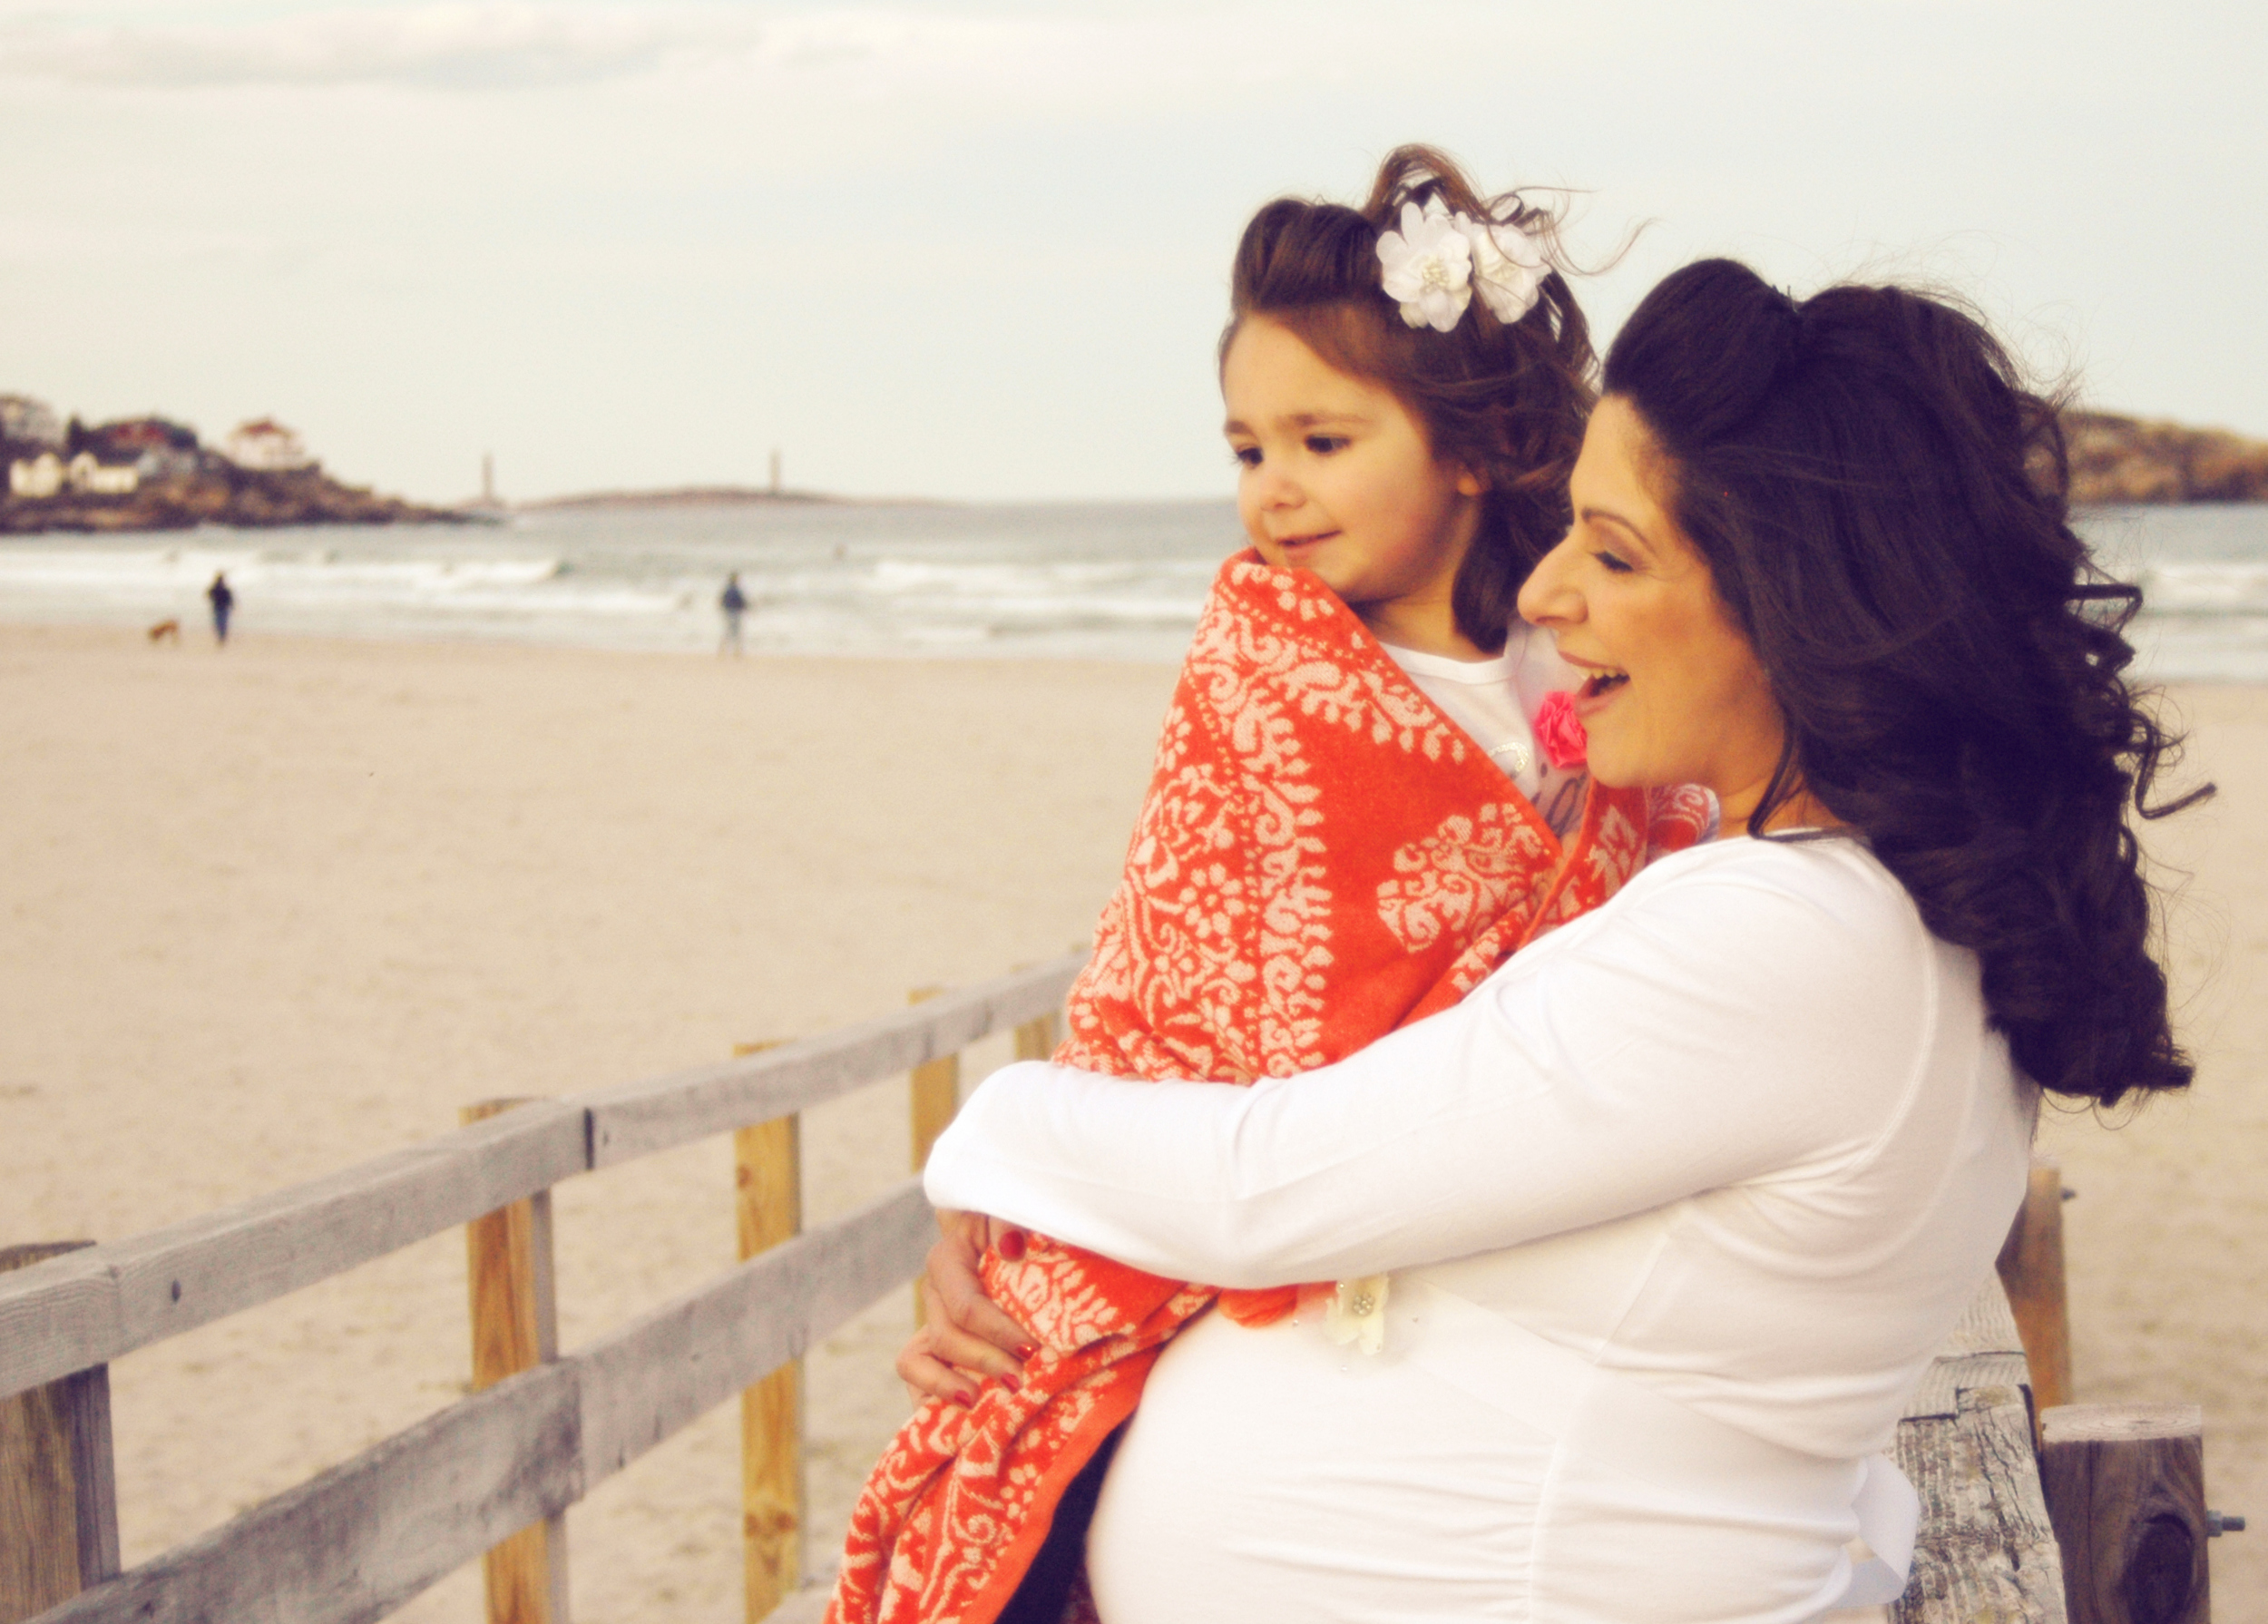 mother-daughter-maternity-beach-portrait